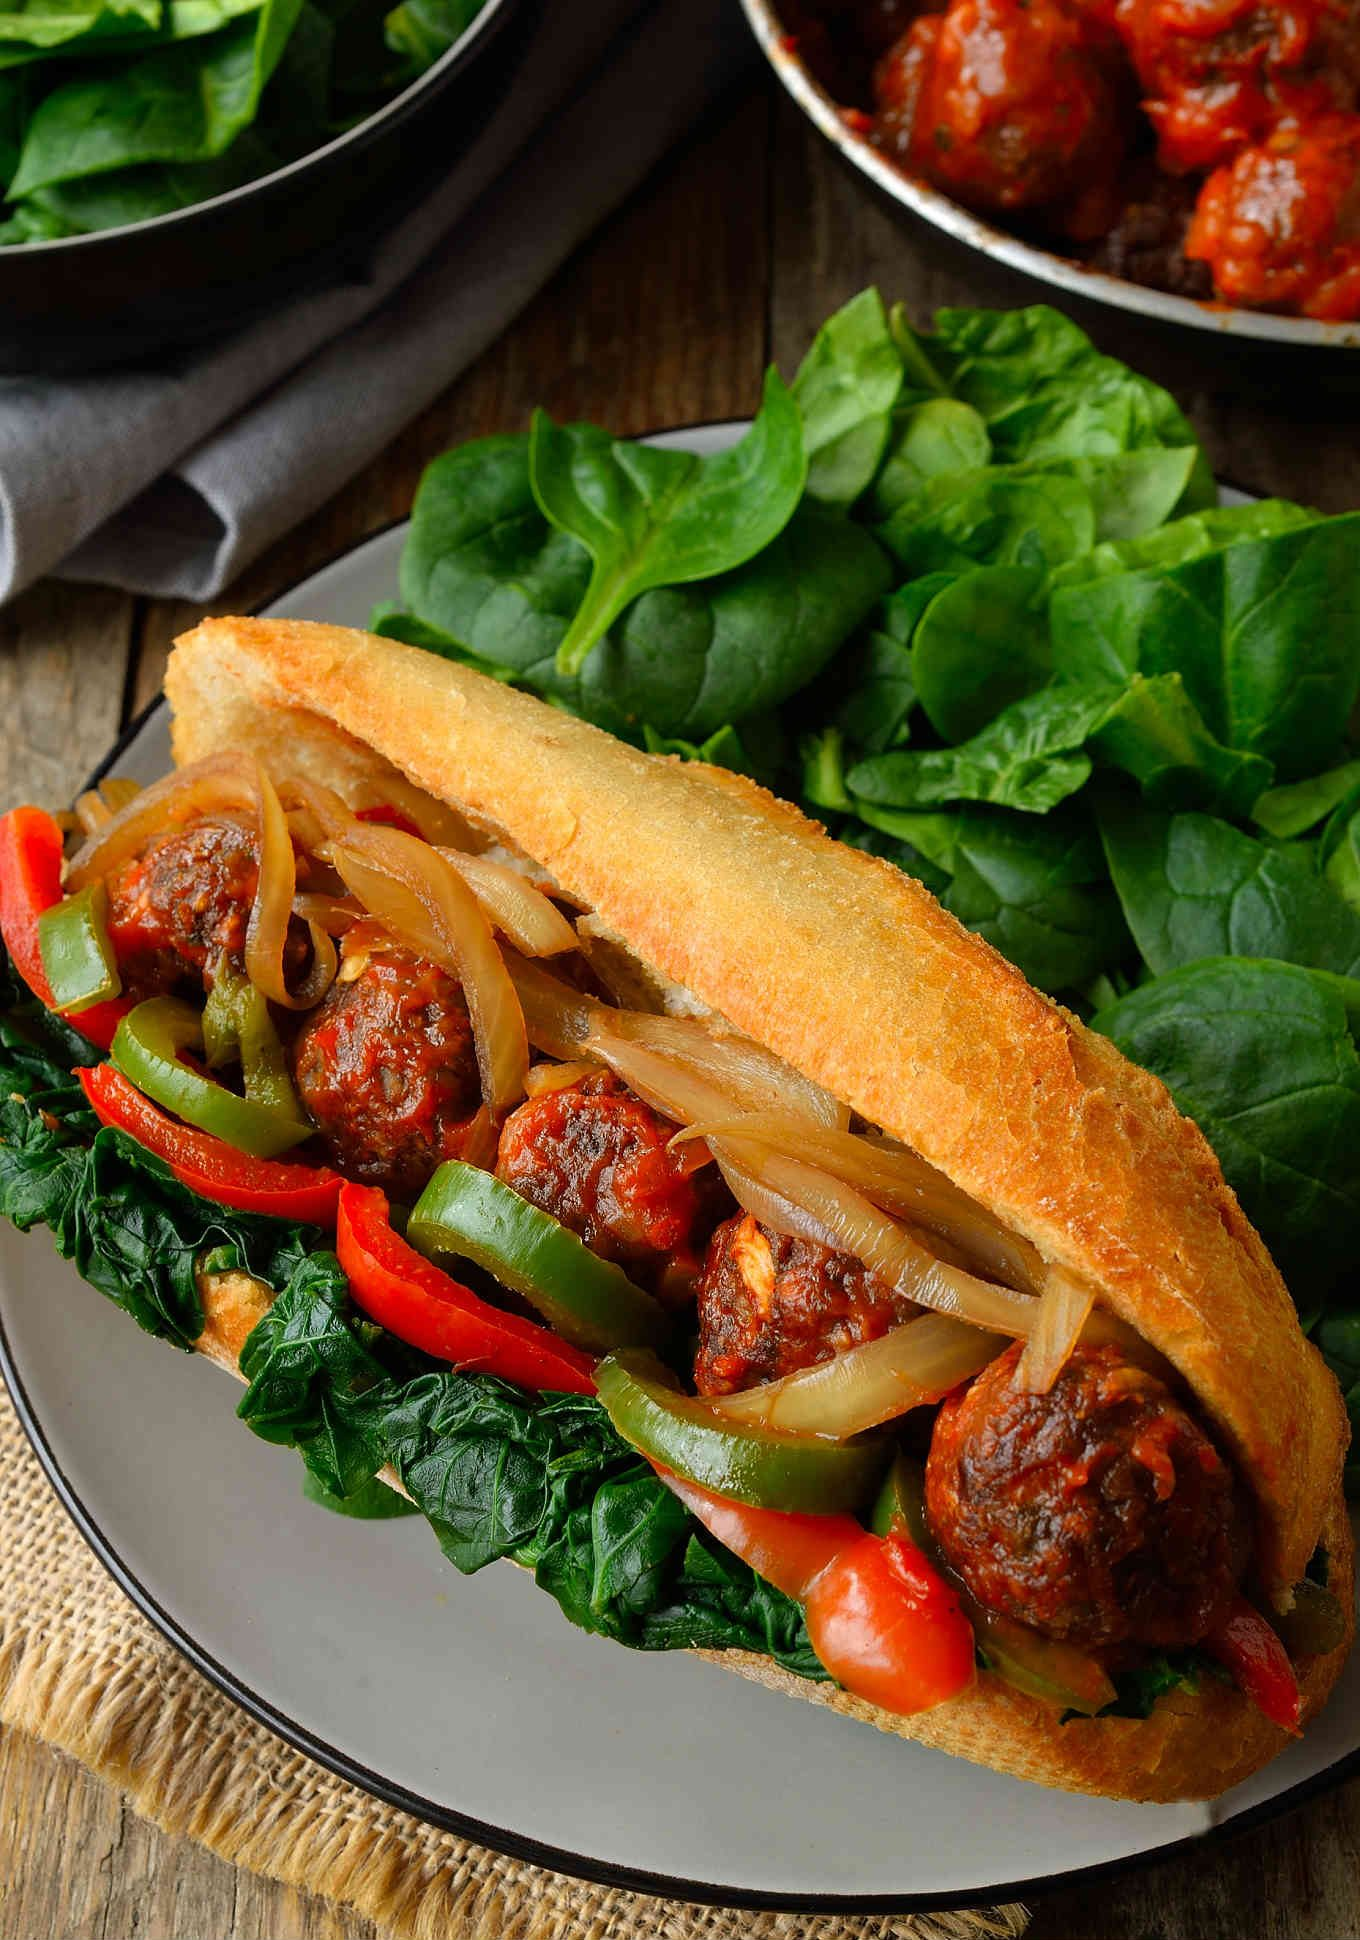 This vegan meatball sub sandwich is super hearty, super flavourful and chock full of veggies. Baked lentil and mushroom meatballs smothered in marinara sauce and served up in a crusty bun stuffed with spinach, onion and peppers. You might need a knife and fork to get these bad boys in your mouth!